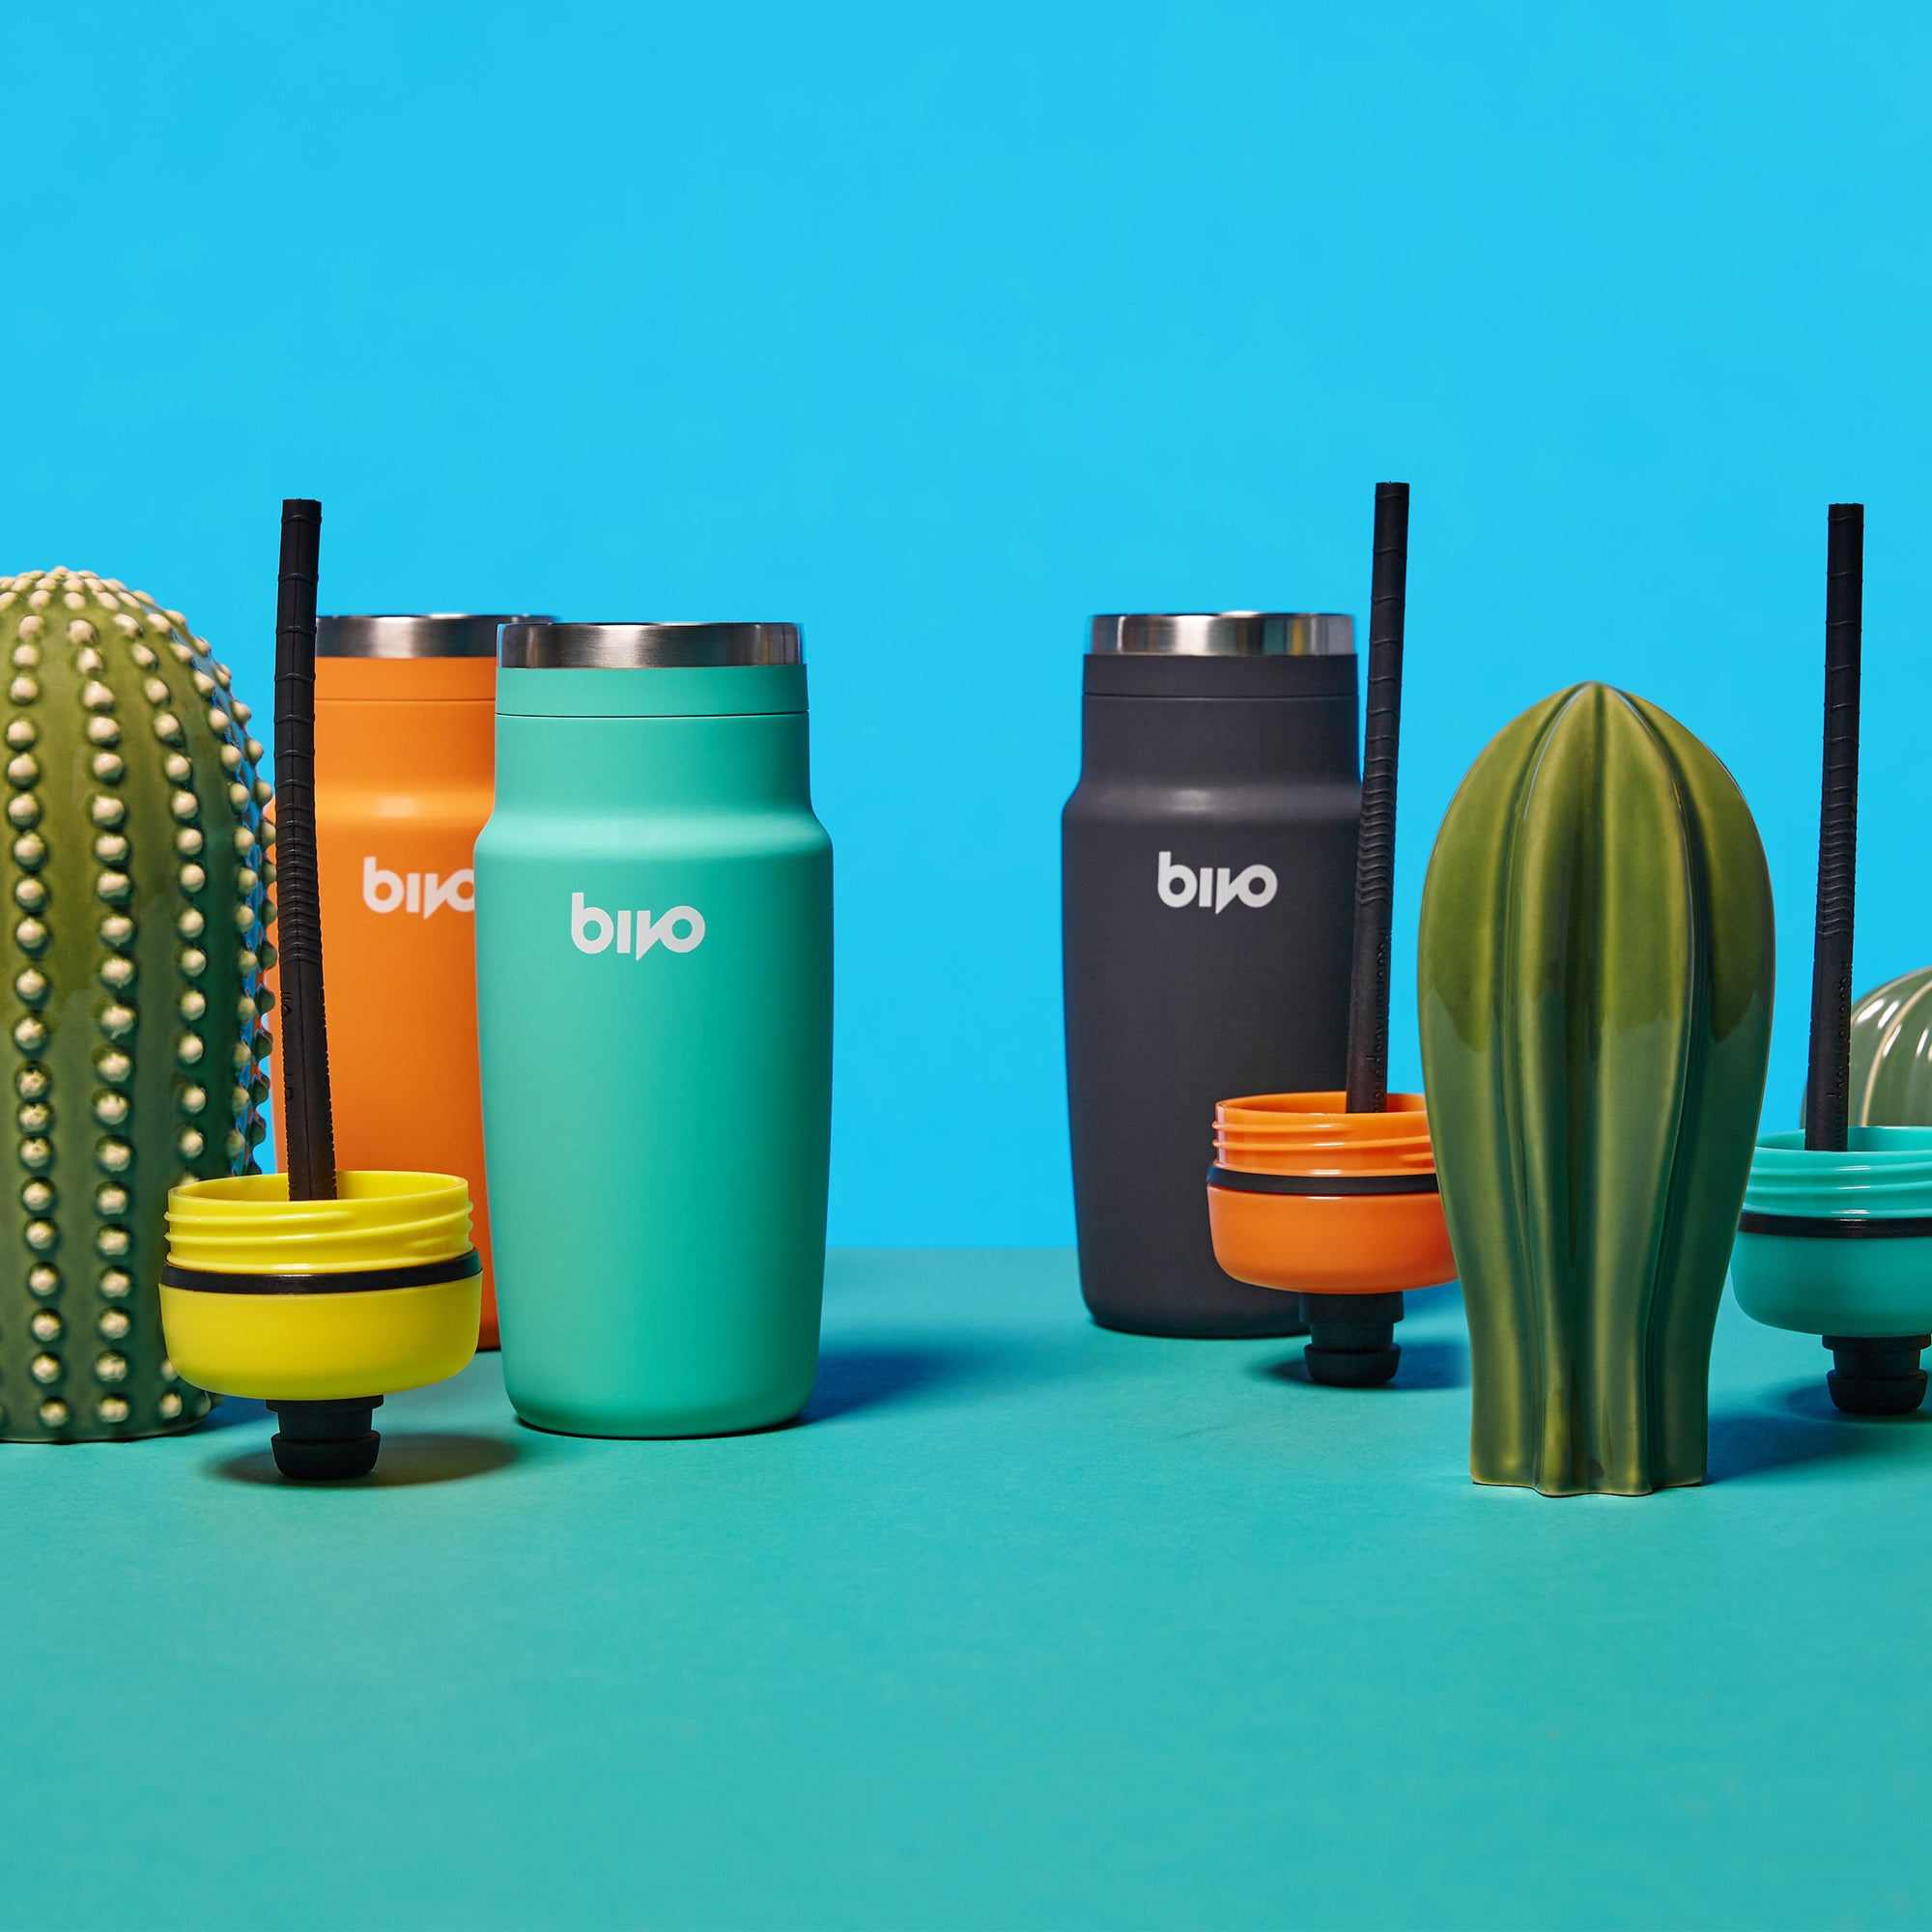 Bivo One stainless steel water bottles are carbon neutral and built to last.